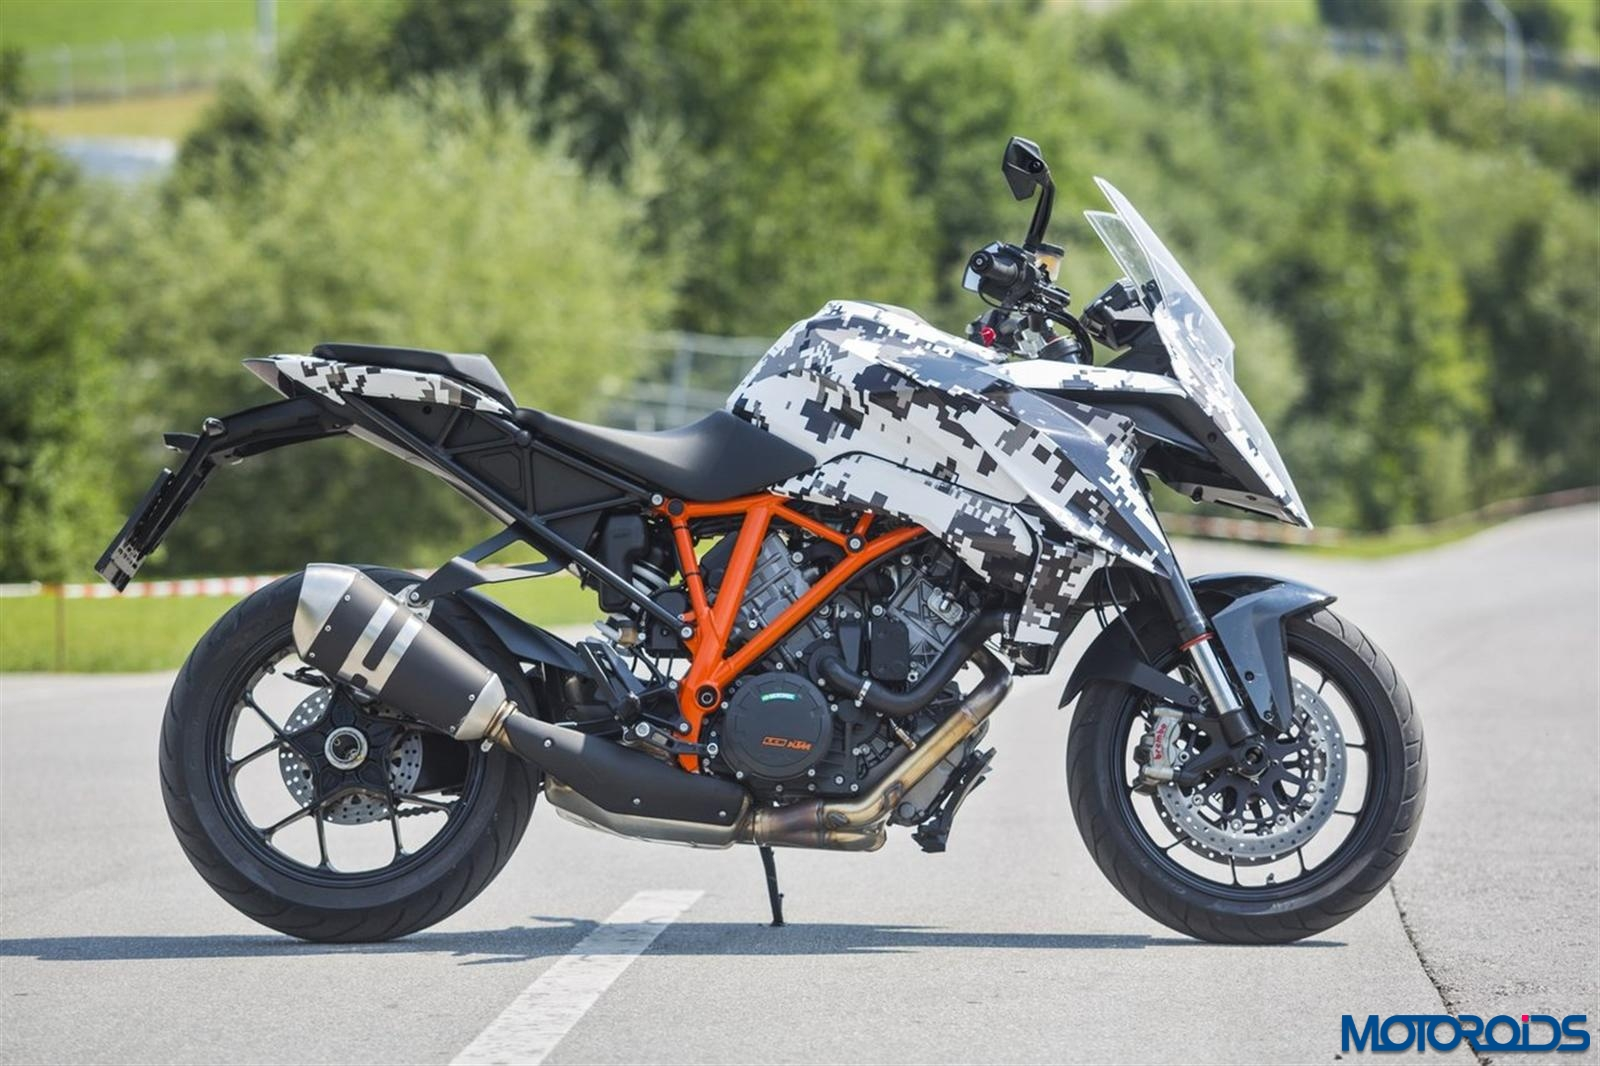 ktm 1290 super duke gt first official photos revealed. Black Bedroom Furniture Sets. Home Design Ideas